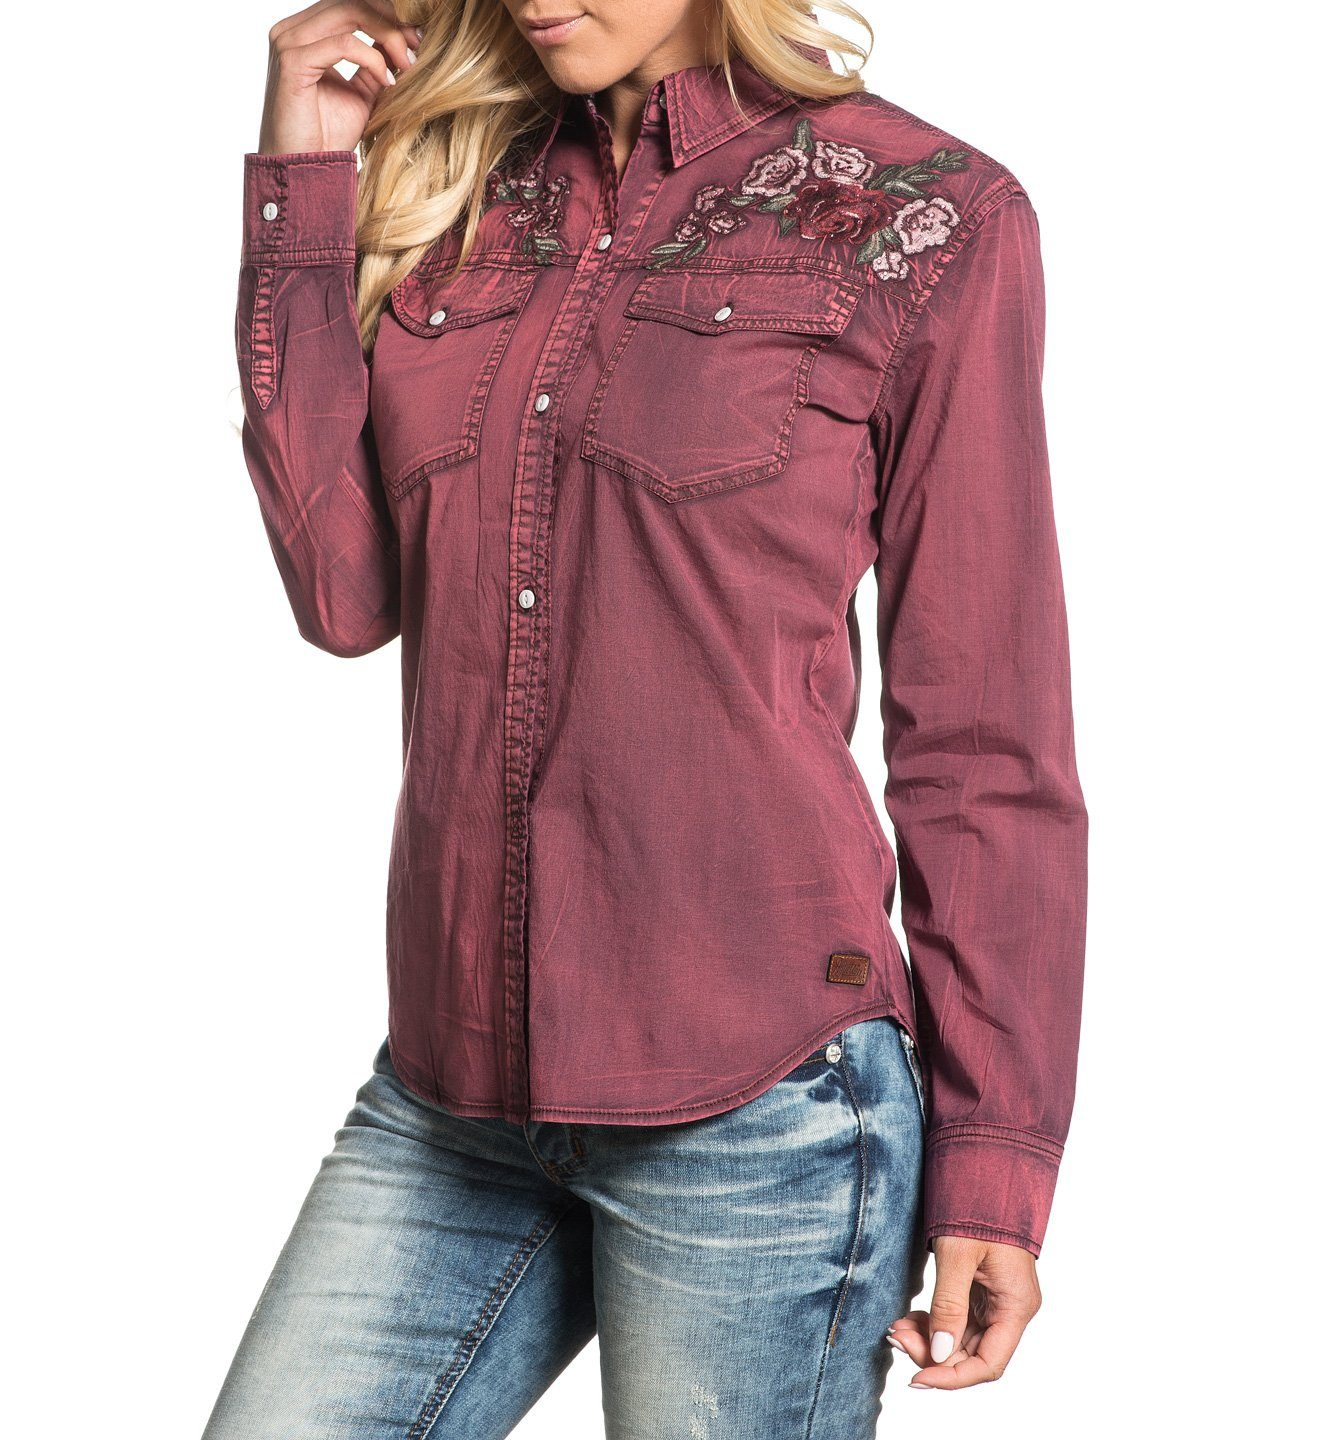 Botanic - Womens Button Down Tops - Affliction Clothing